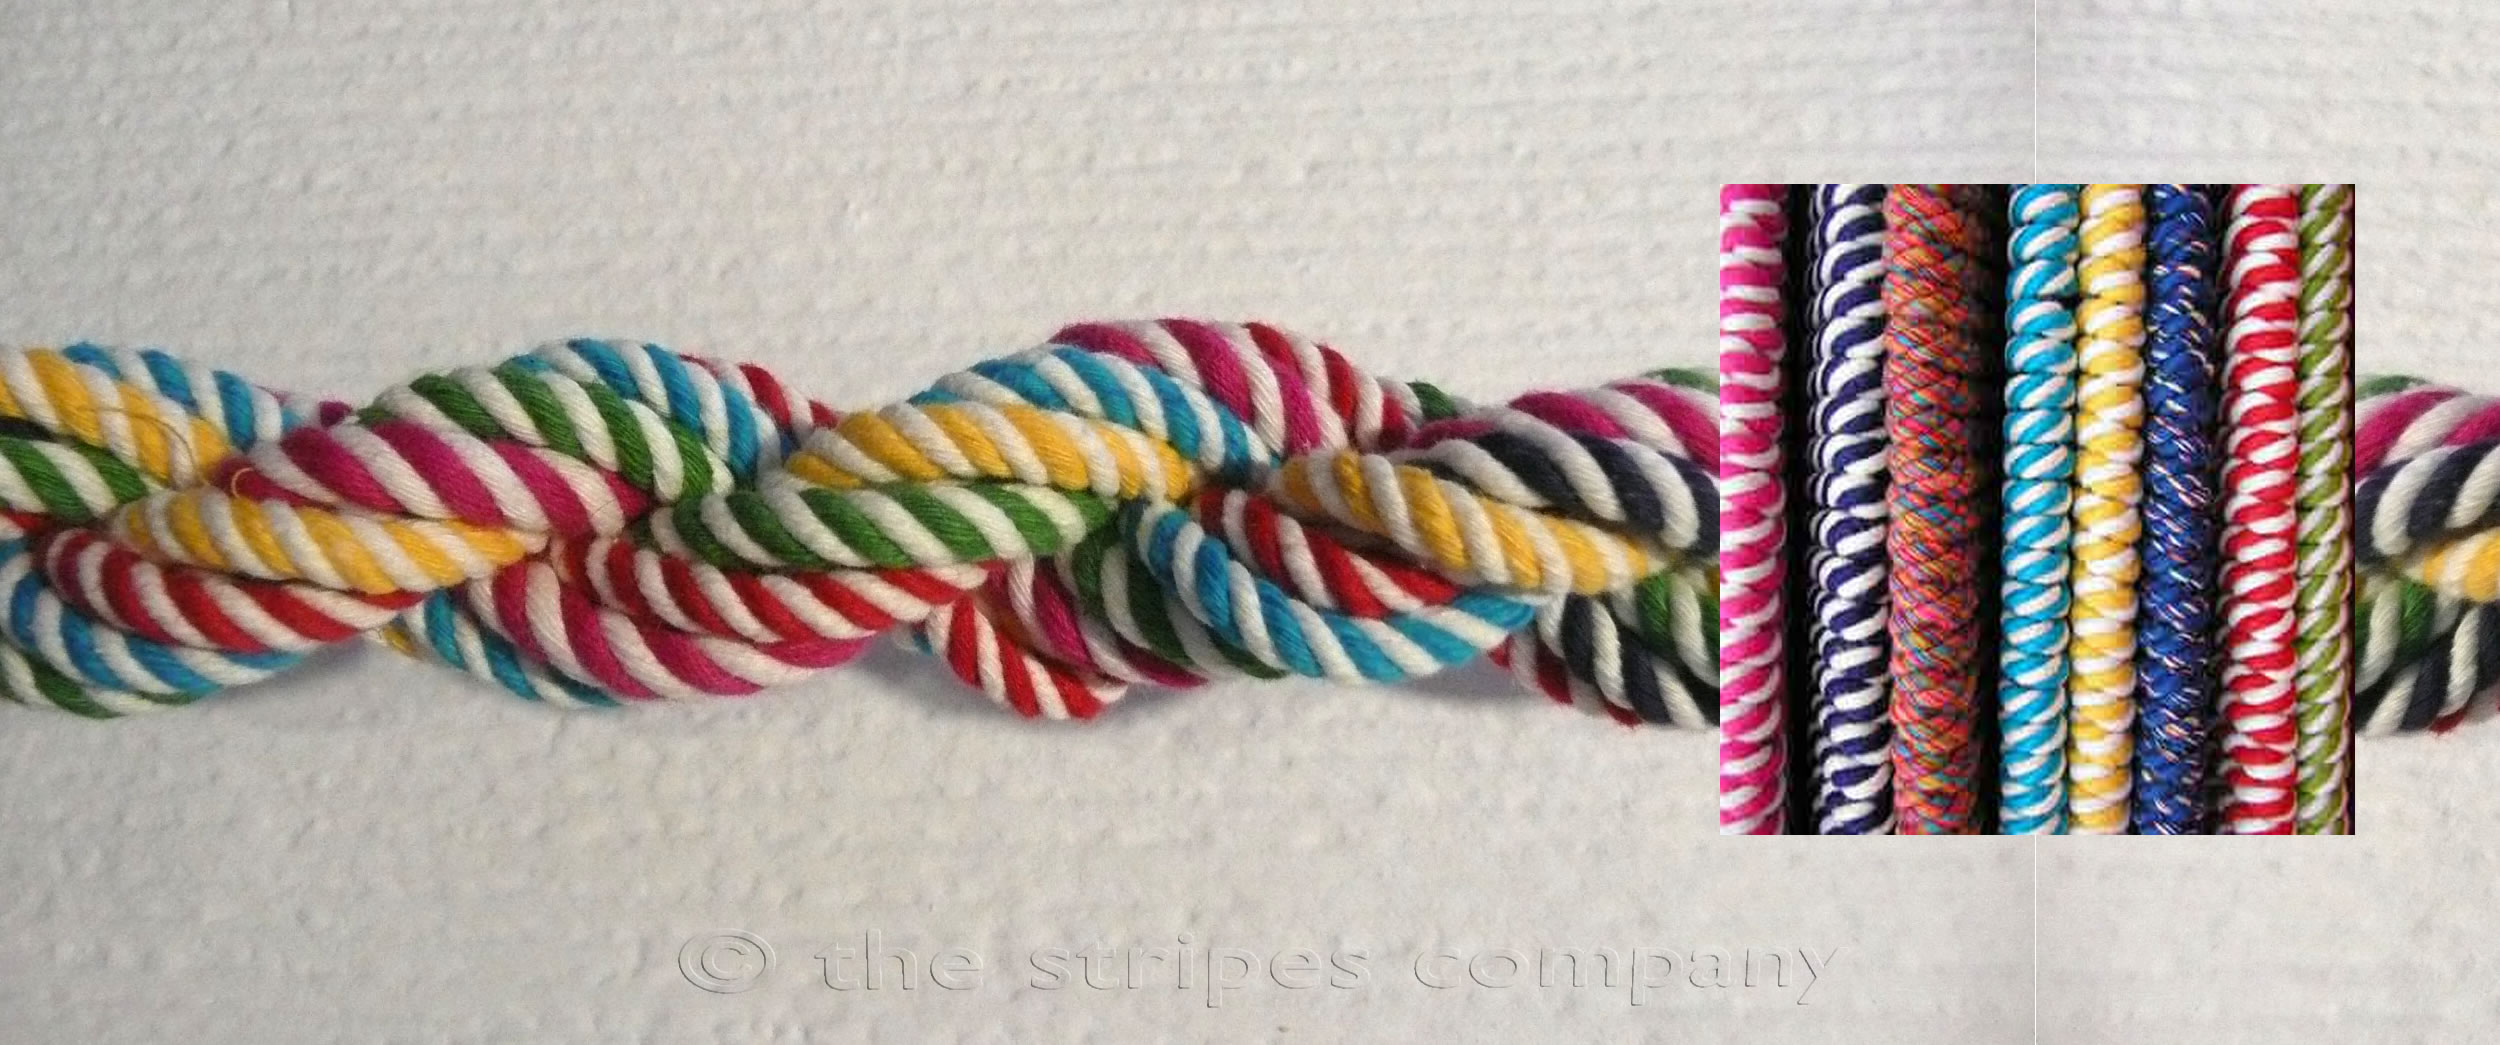 Striped Cord | Striped Rope